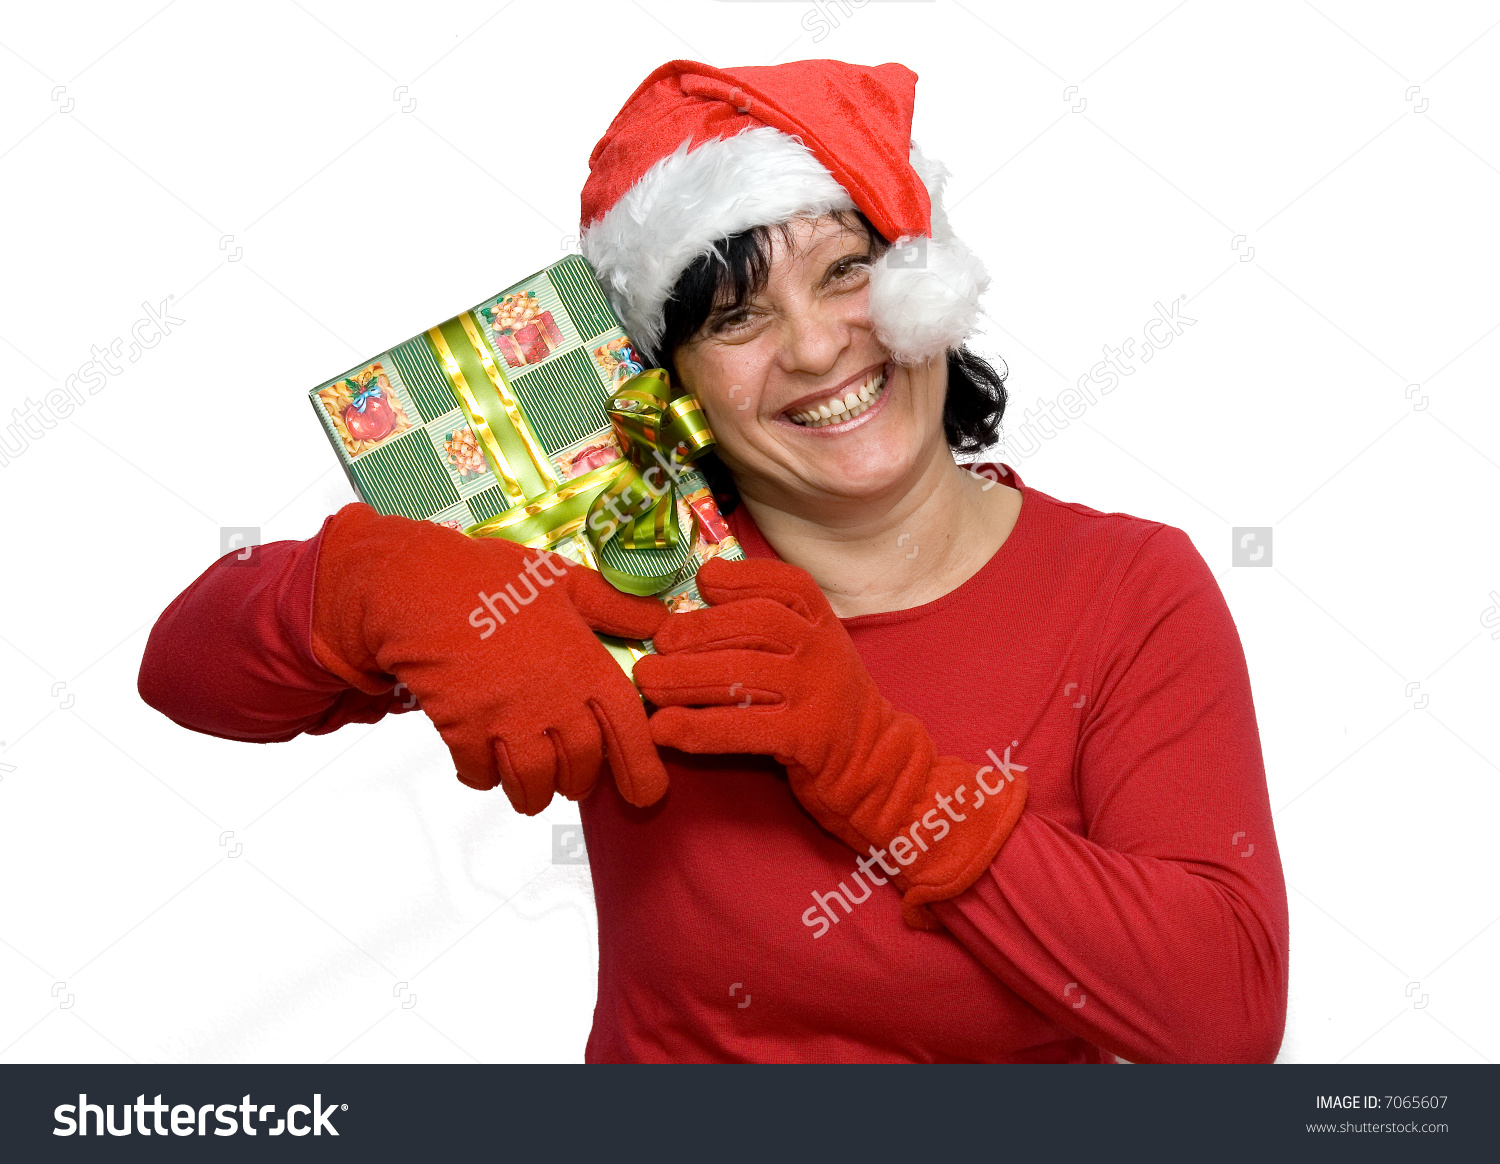 Happy Woman Christmas Clothes Gifts Studio Stock Photo 7065607 ...